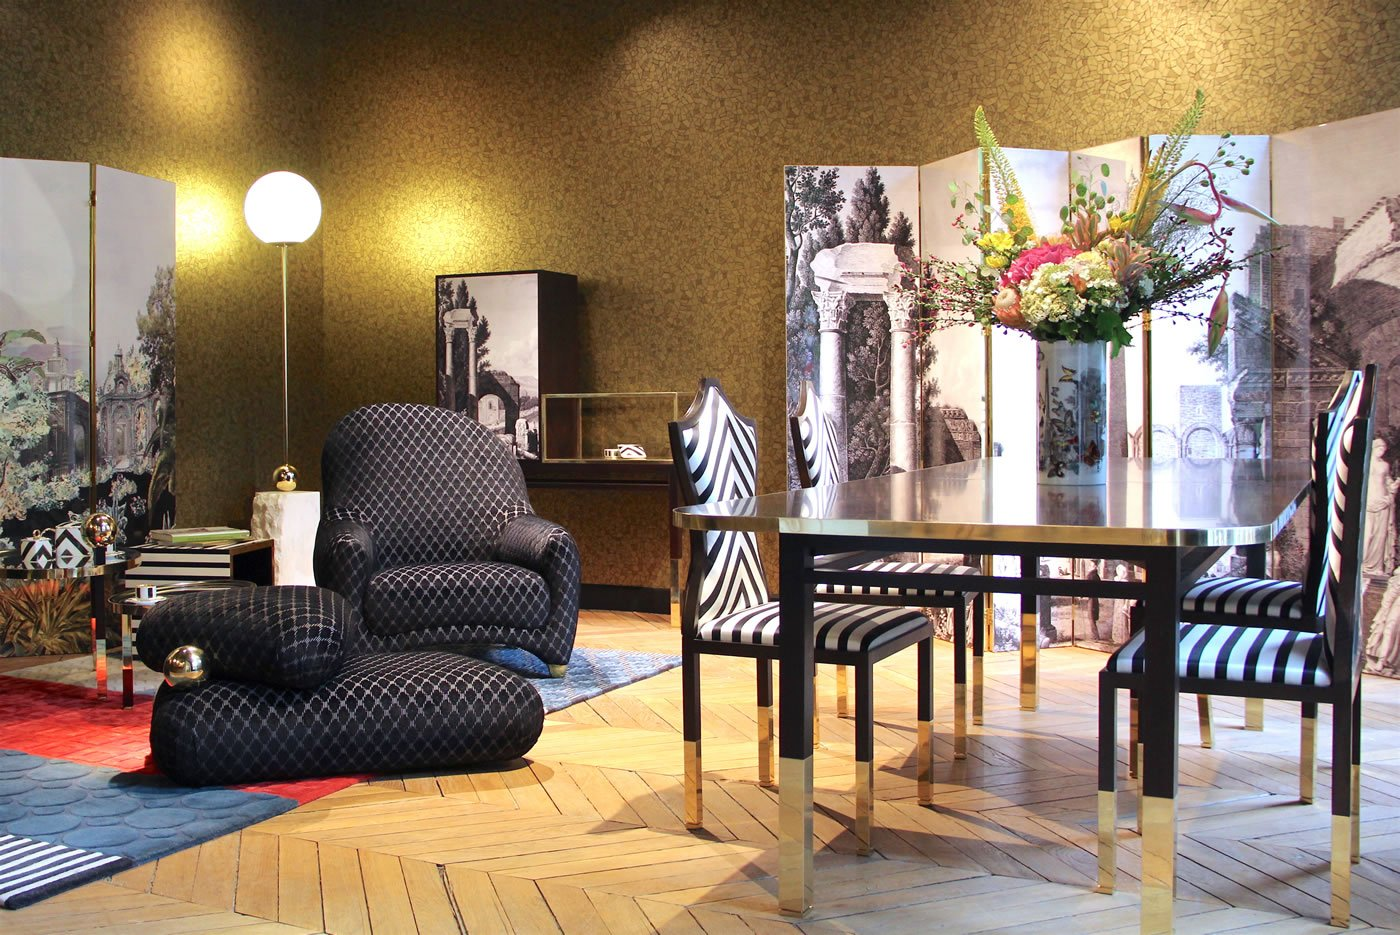 Roche Bobois And Christian Lacroix Collaborate Over A